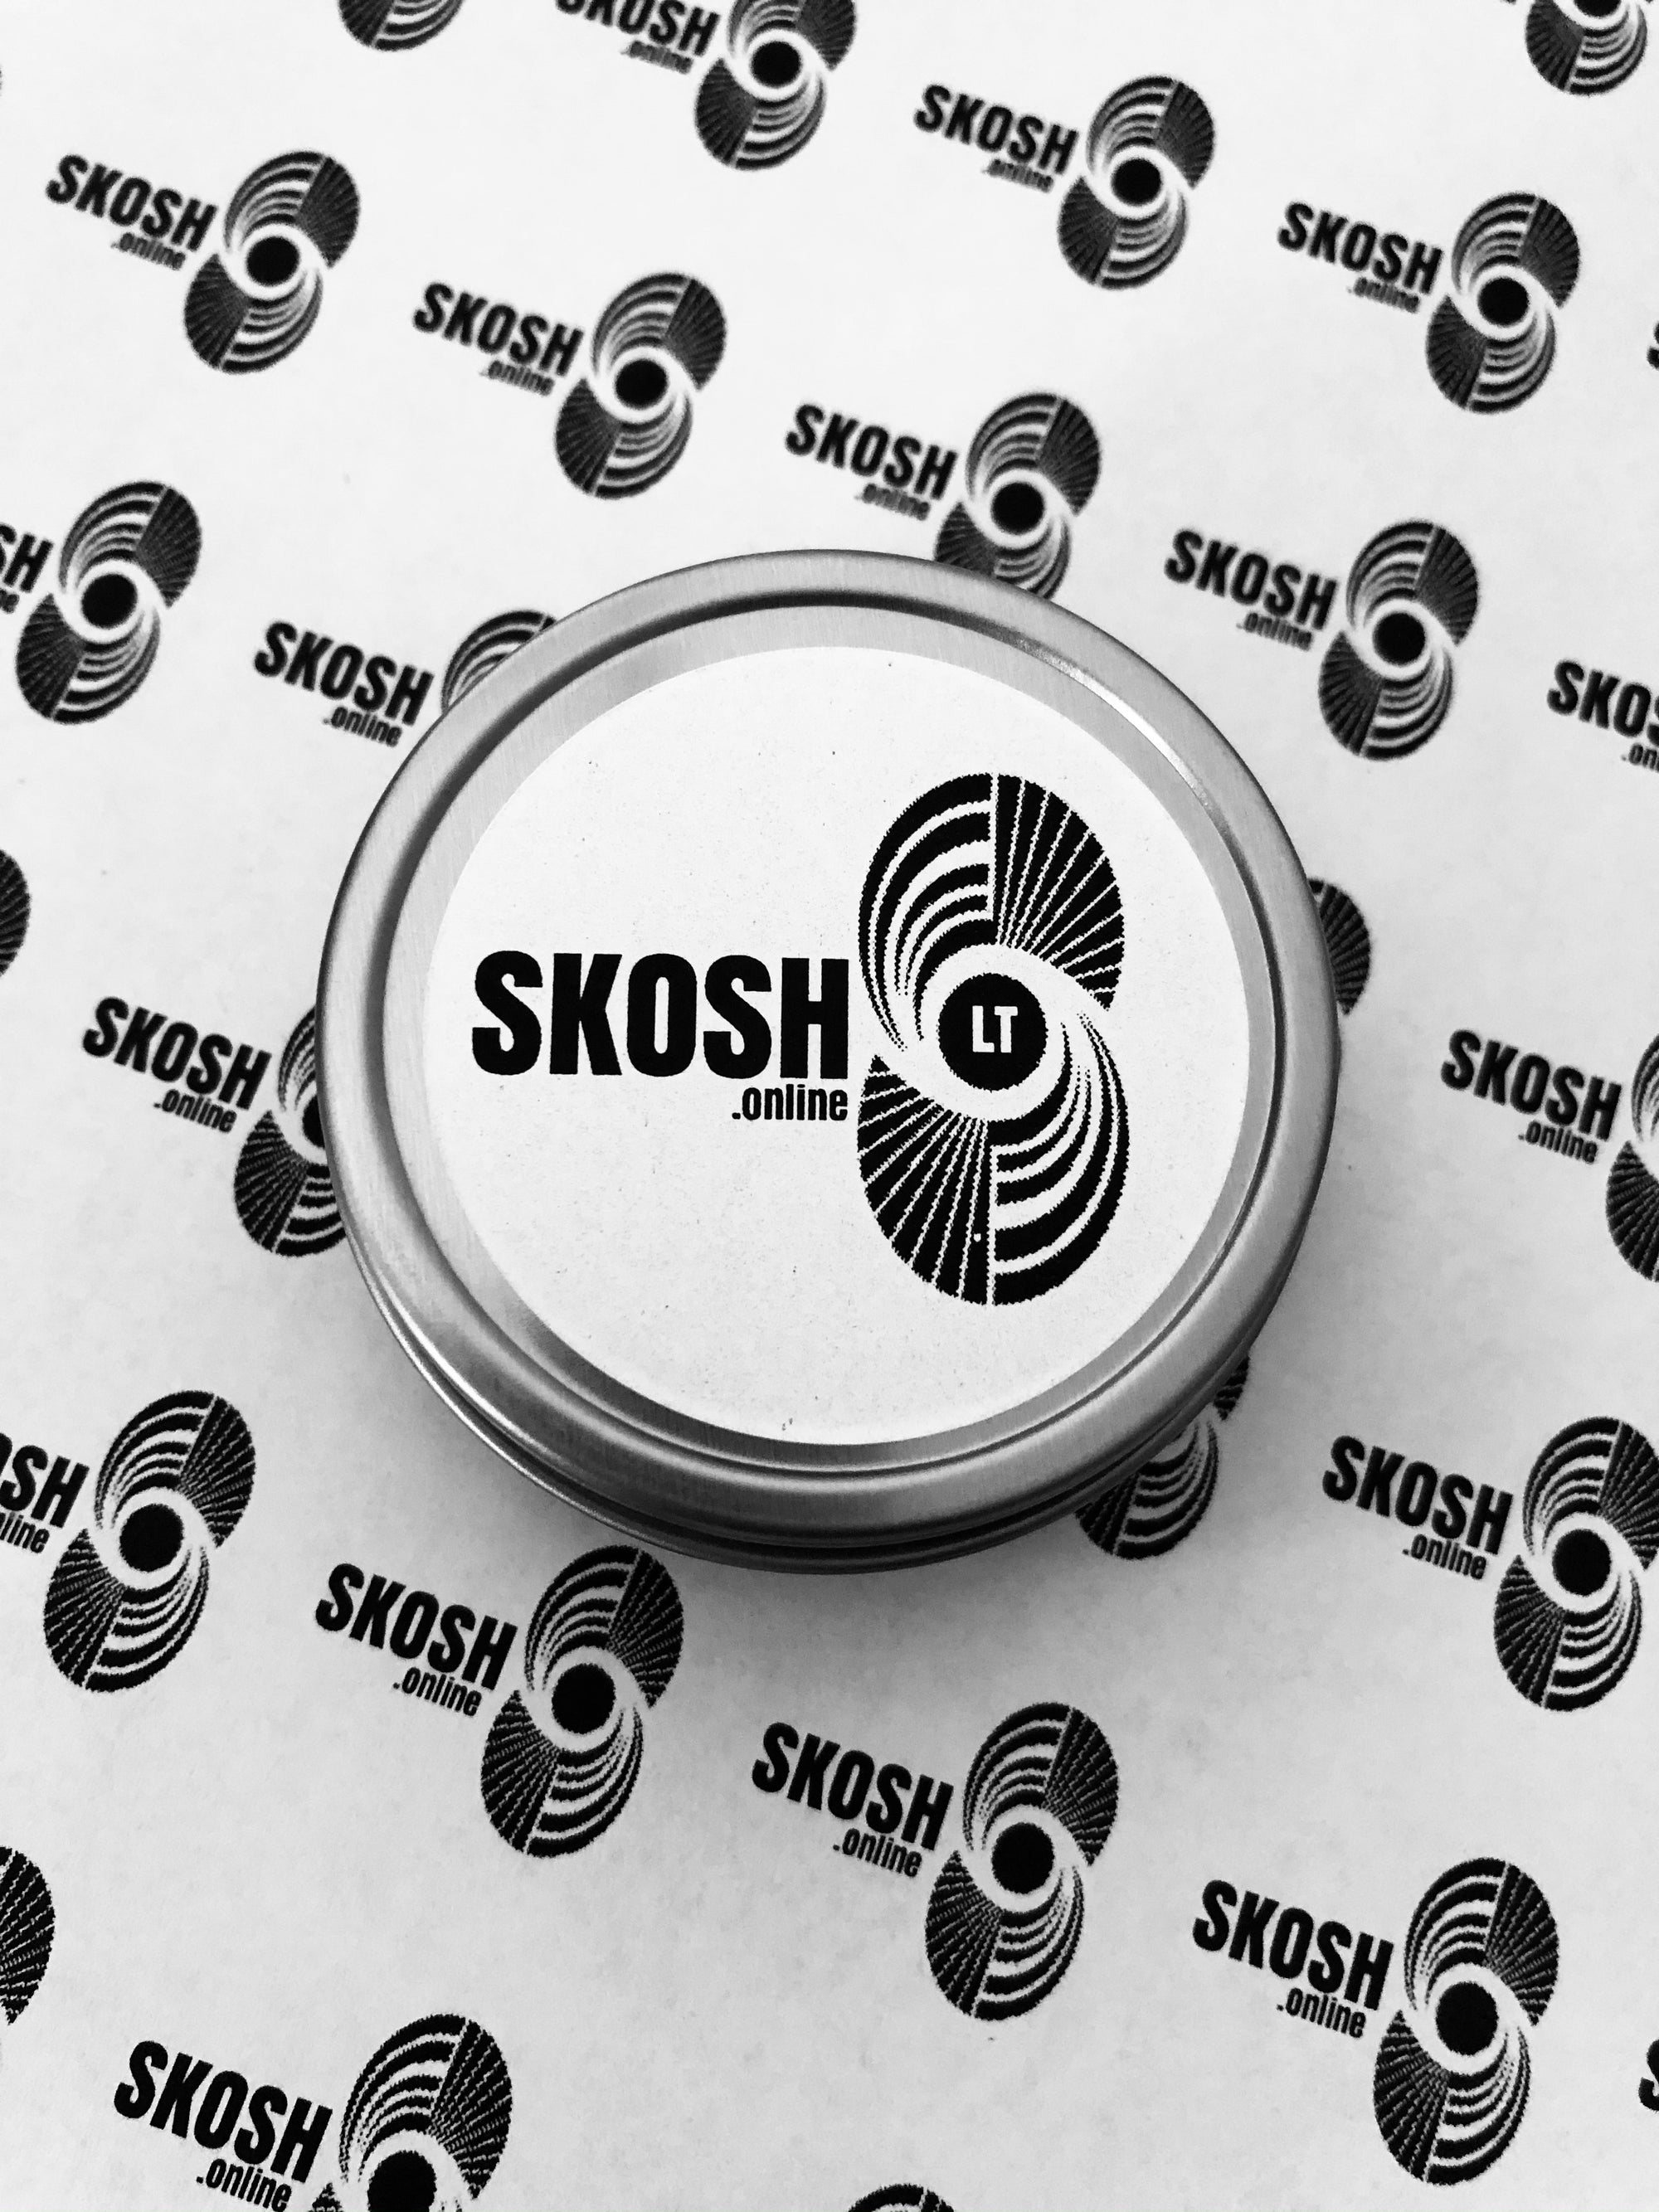 SKOSH-LT (LIGHT)